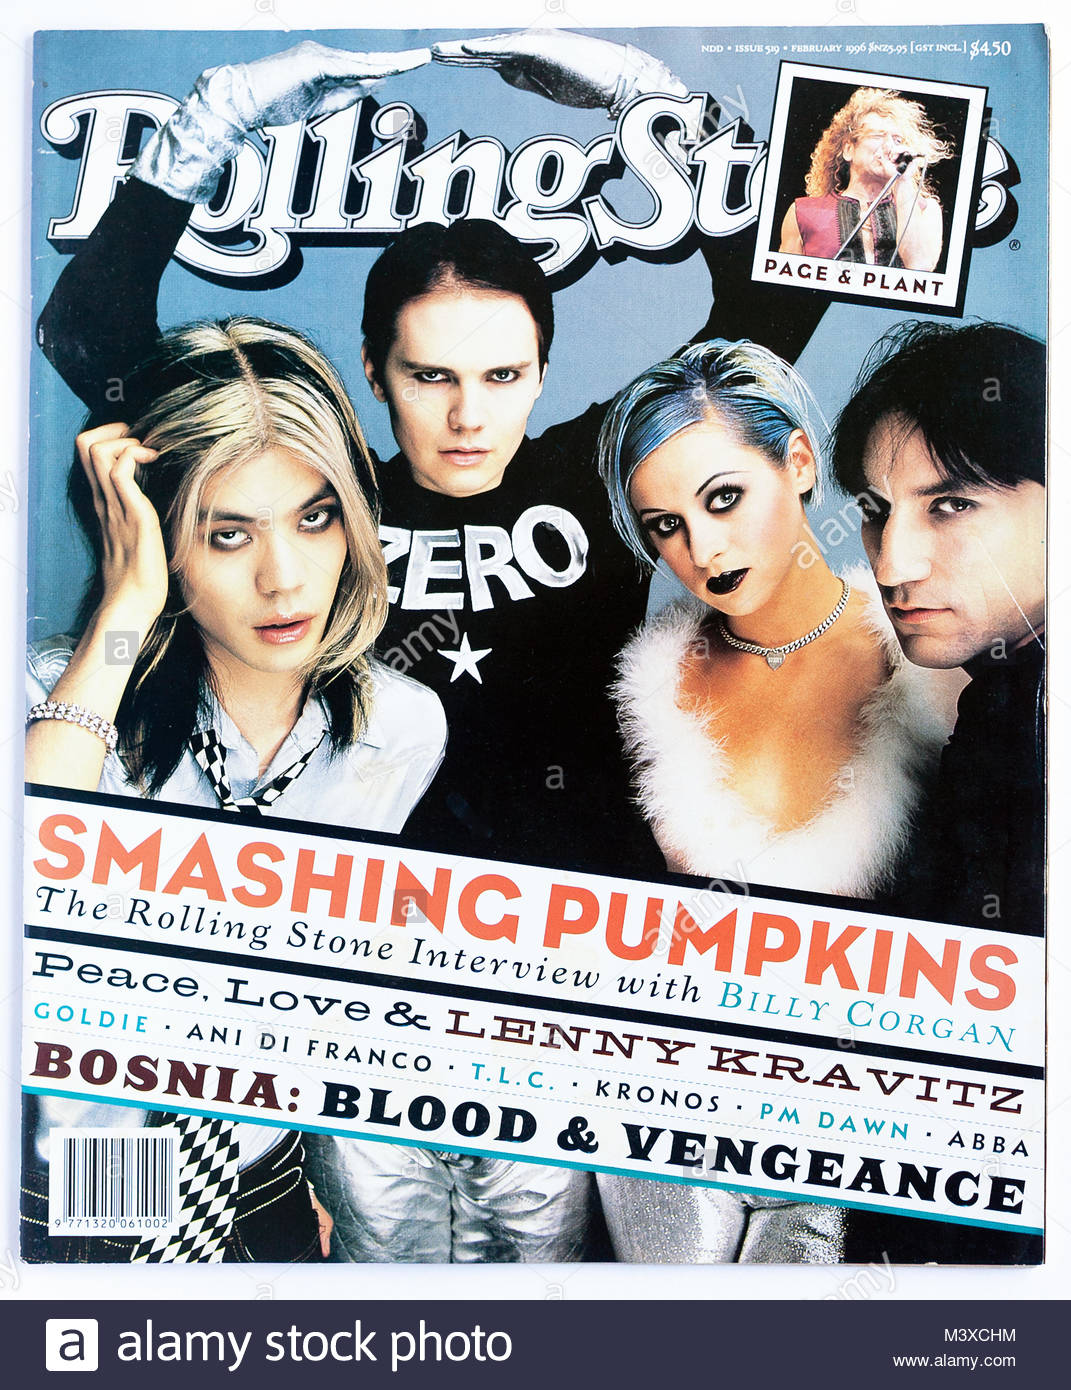 The cover of Rolling Stone magazine, issue 519, Smashing Pumpkins - Stock Image